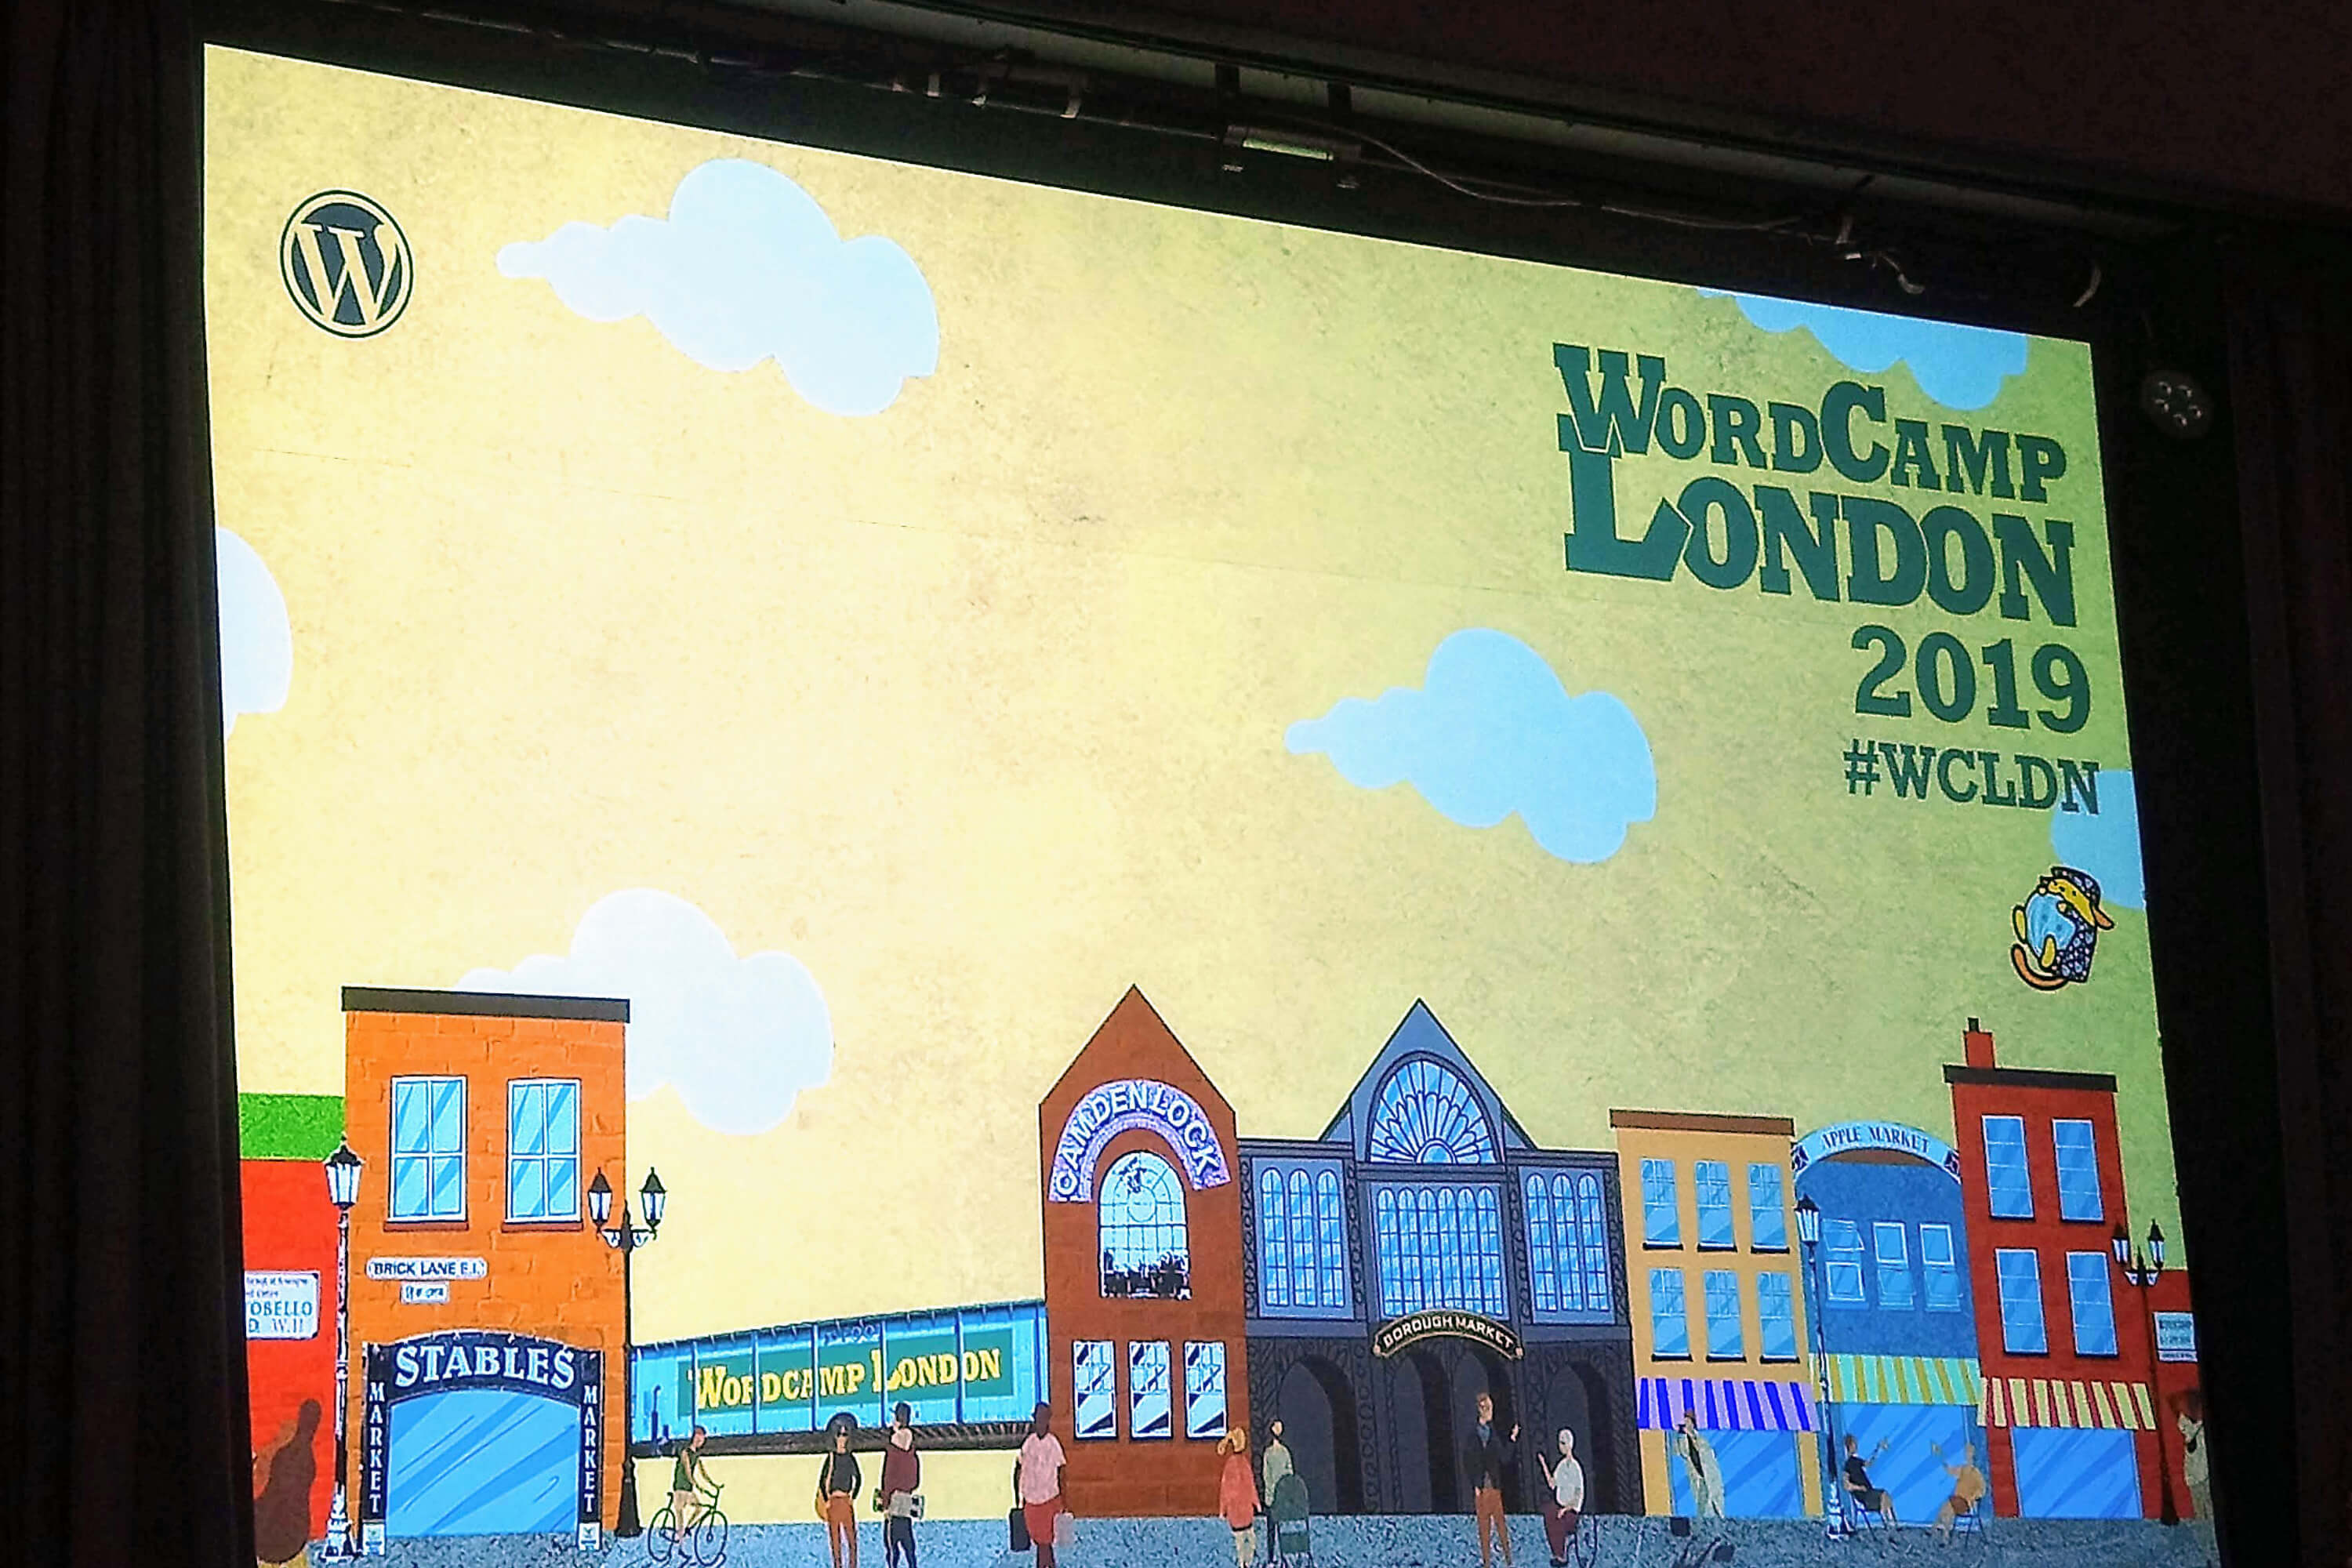 Fellowship attend Wordcamp London 2019